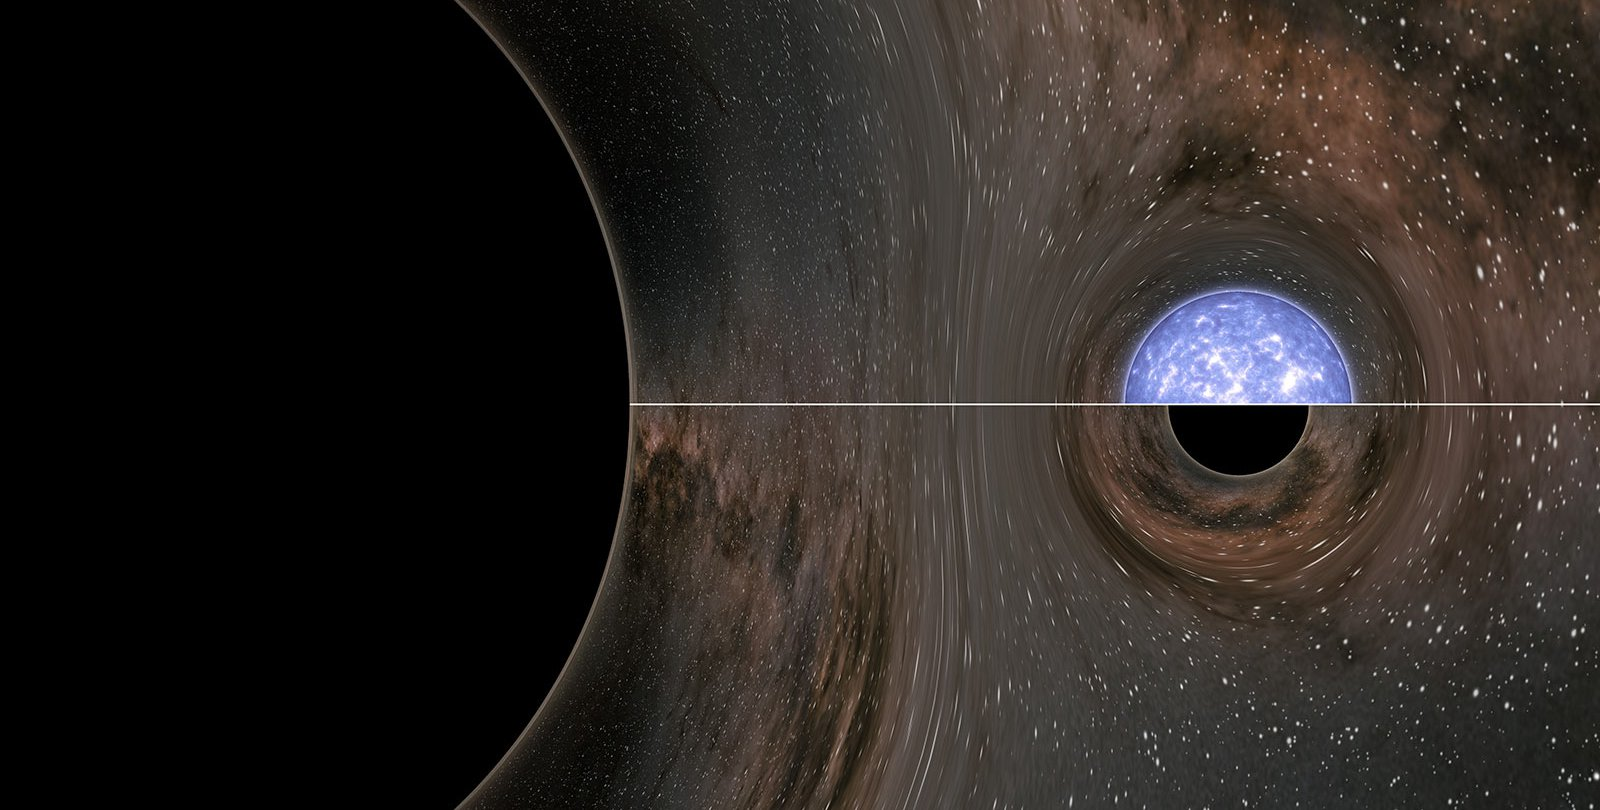 Artwork showing a black hole merging with a black hole or neutron star.